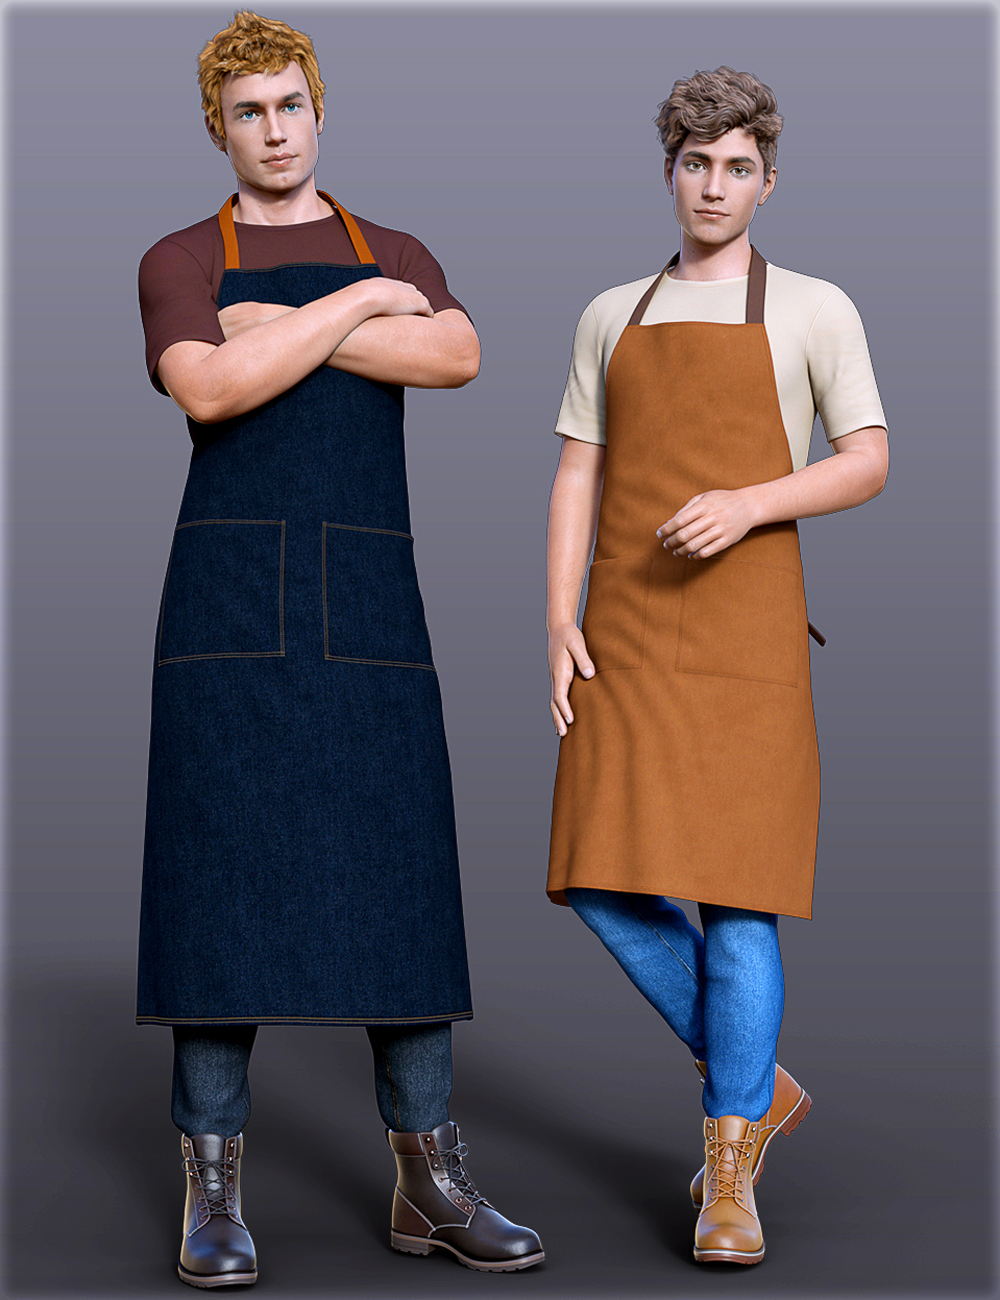 dForce H&C Apron and Casual Outfit for Genesis 8 Male(s) by: IH Kang, 3D Models by Daz 3D